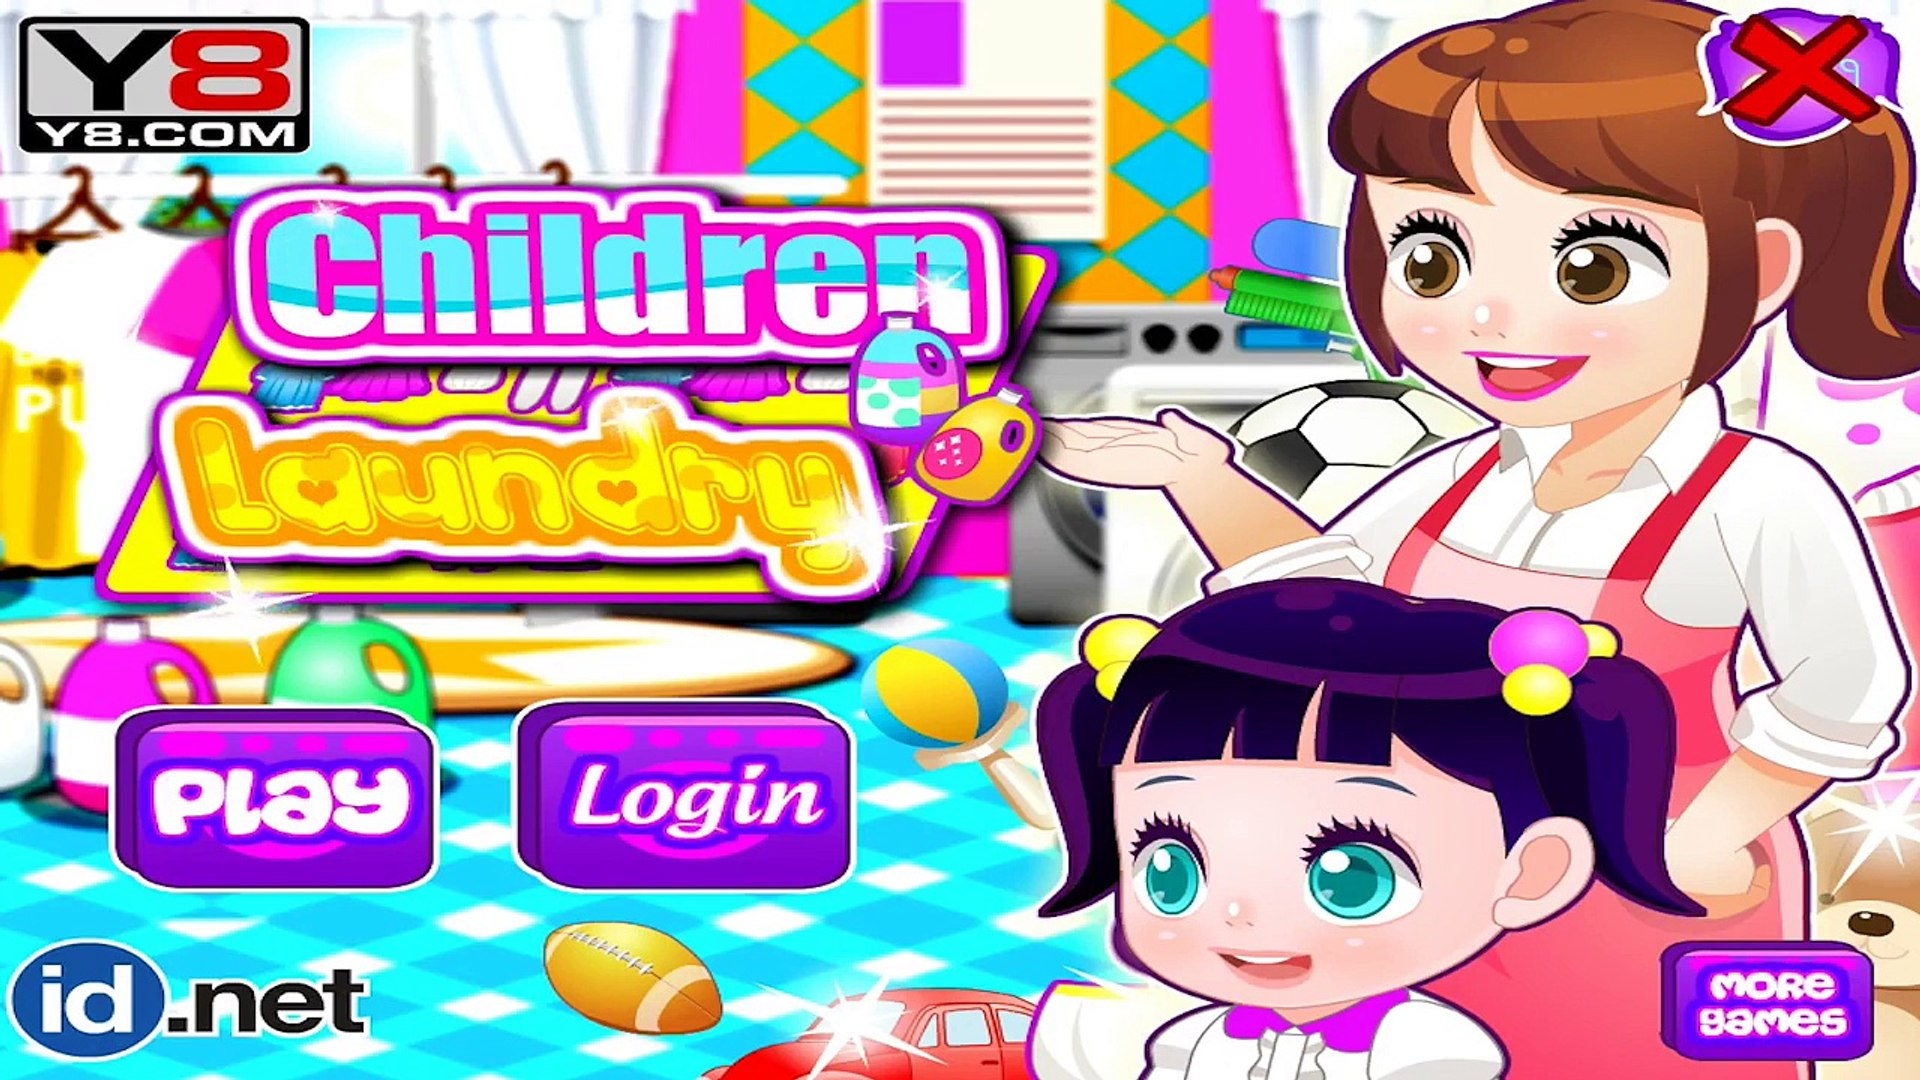 Play & Learn Kids Daily Routine - Bath Brush Teeth & Dress Up with Pretty Alice Daily Fun